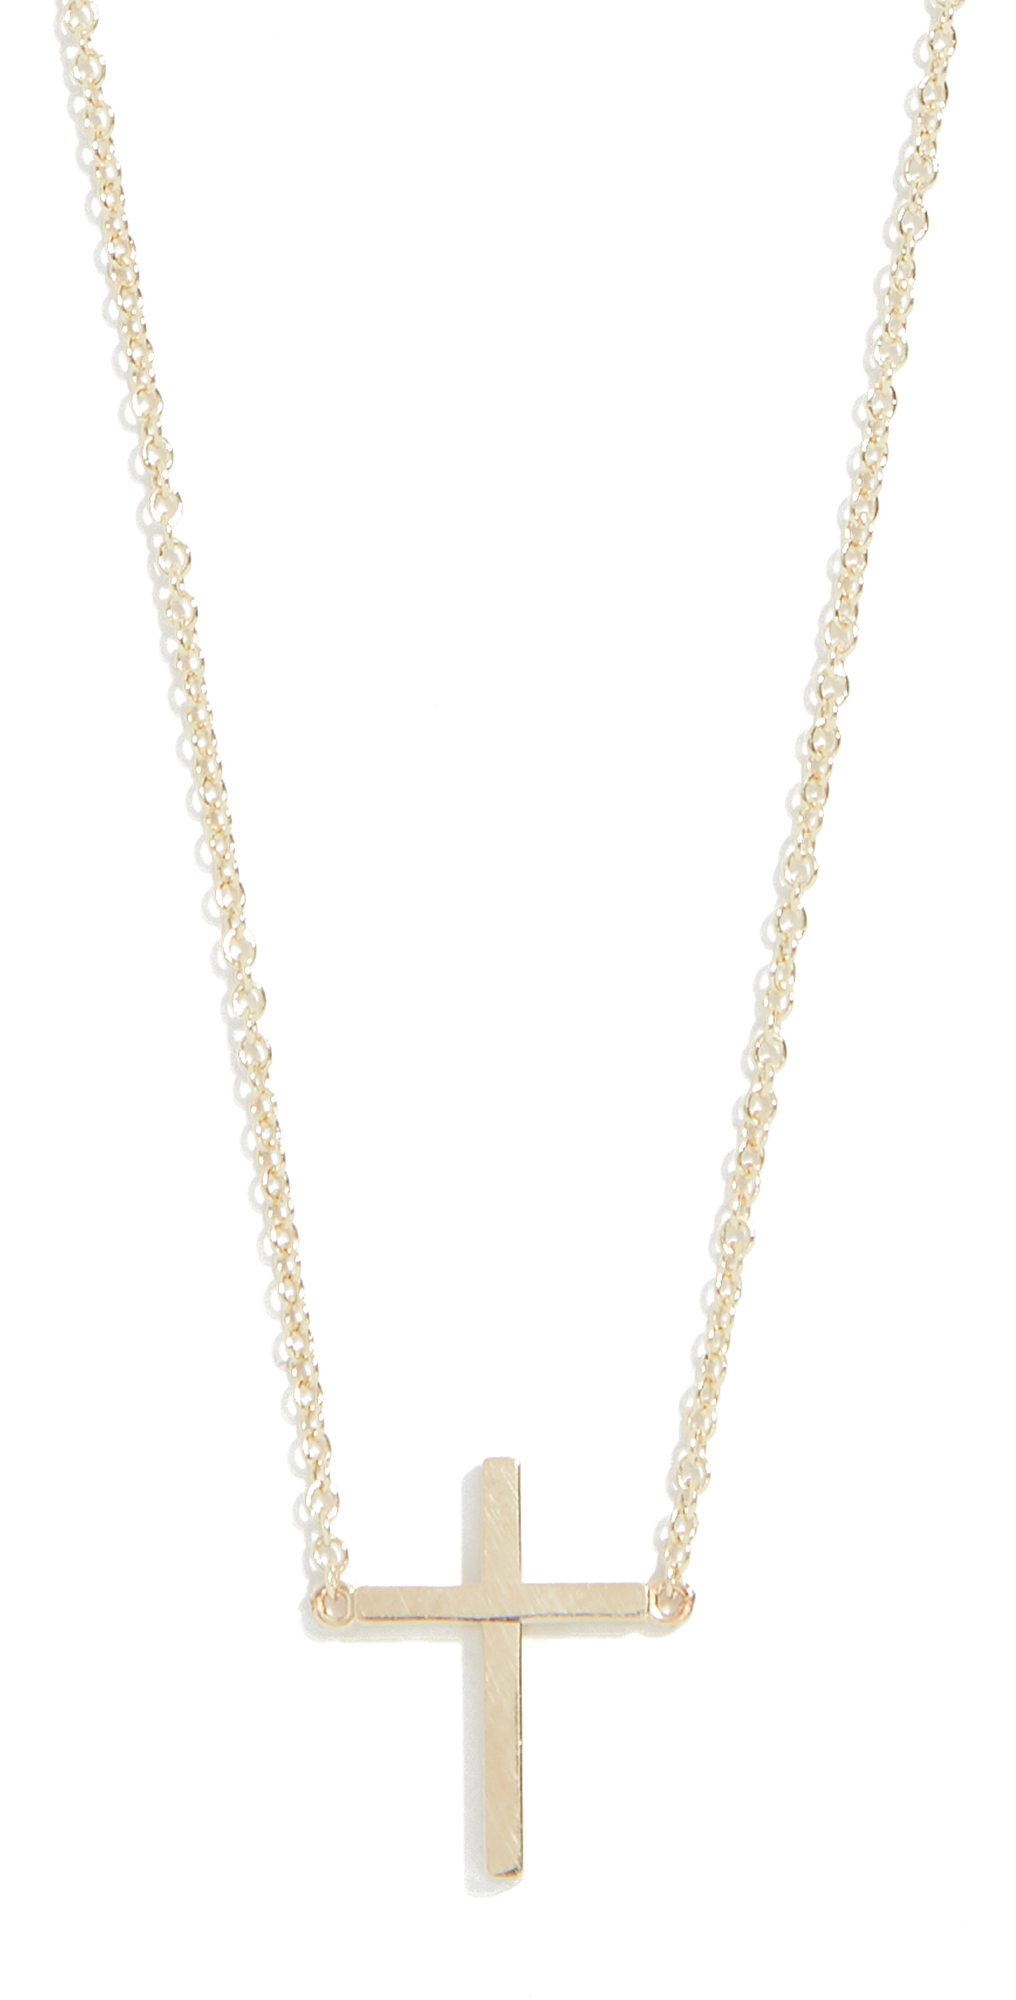 18k Gold Thin Cross Necklace